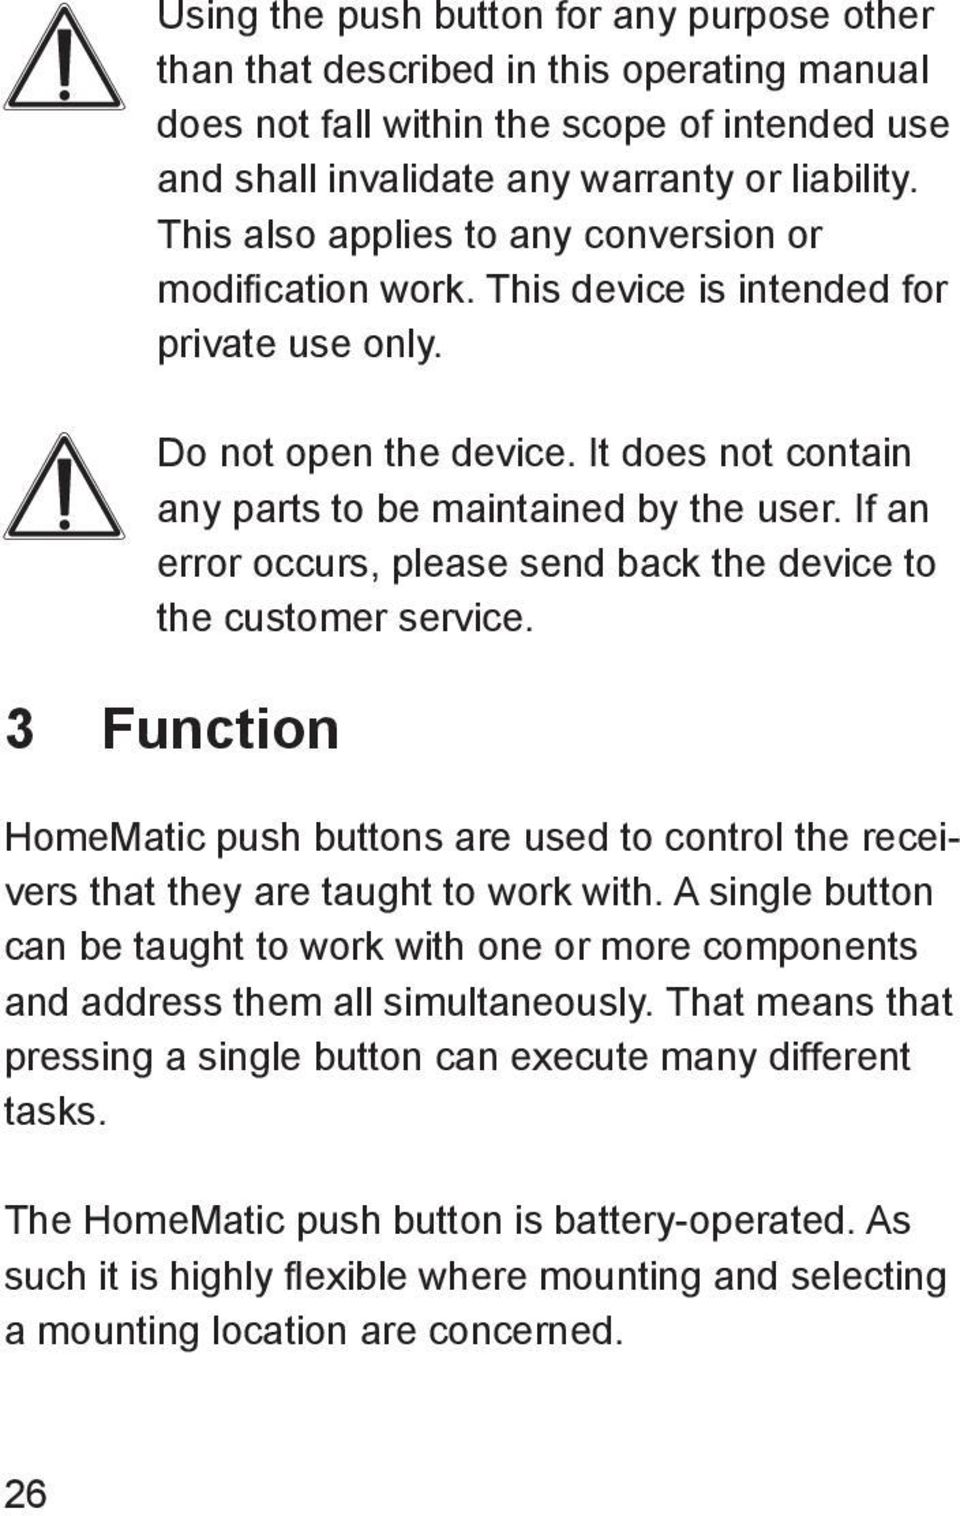 If an error occurs, please send back the device to the customer service. 3 Function HomeMatic push buttons are used to control the receivers that they are taught to work with.